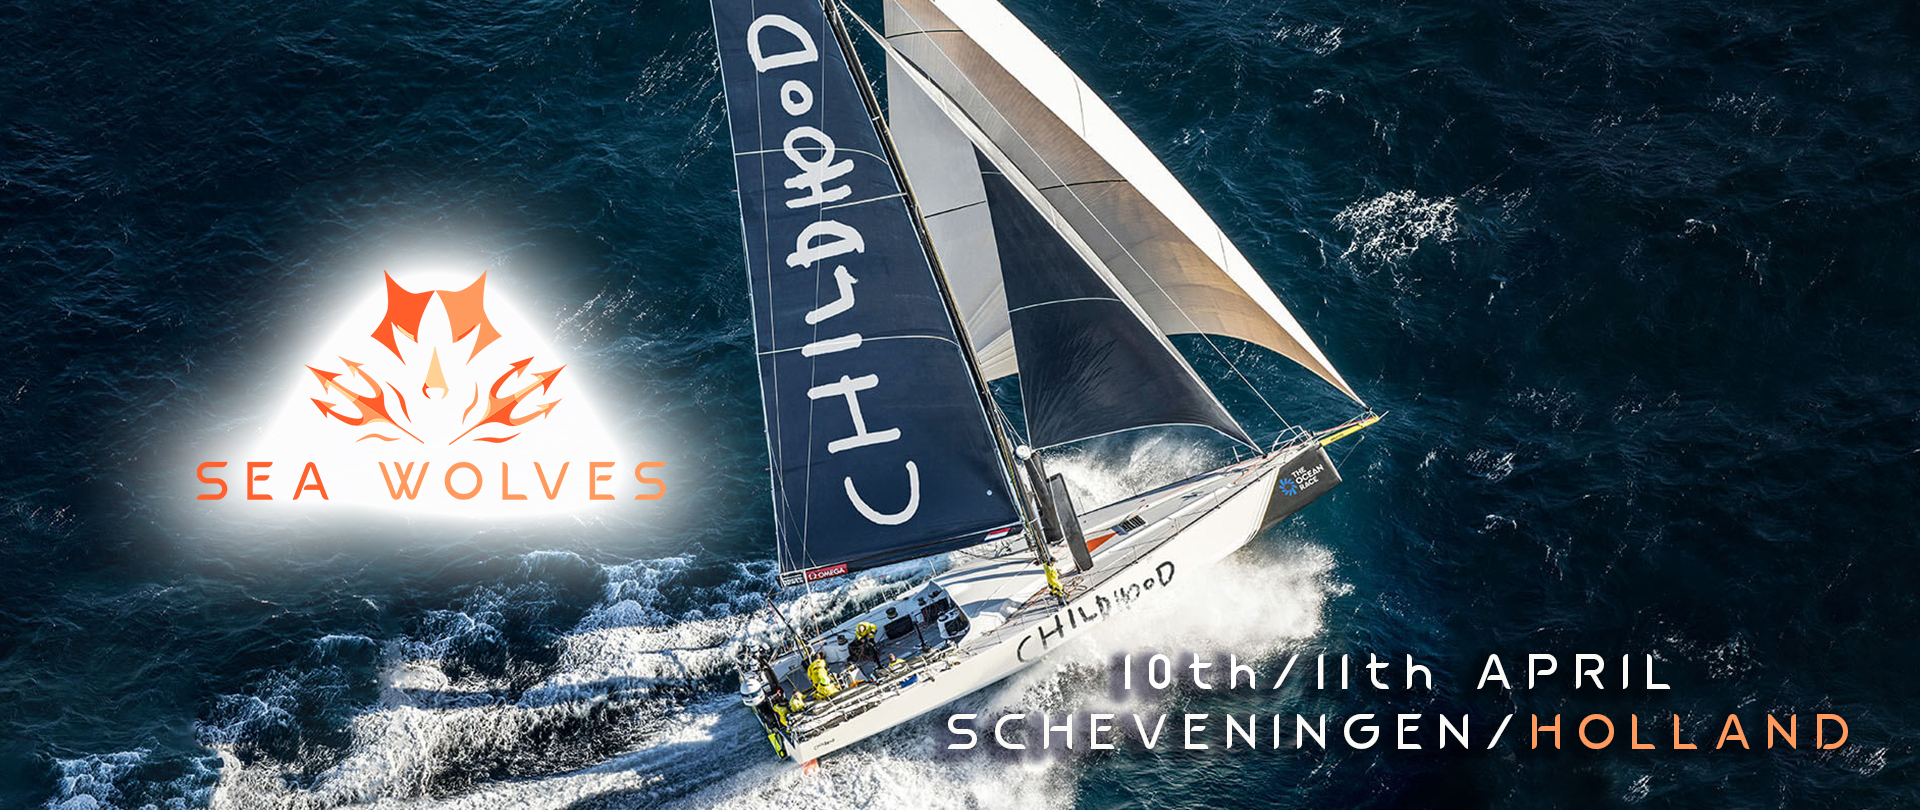 Sea Wolves V65 Childhood sailing clinic